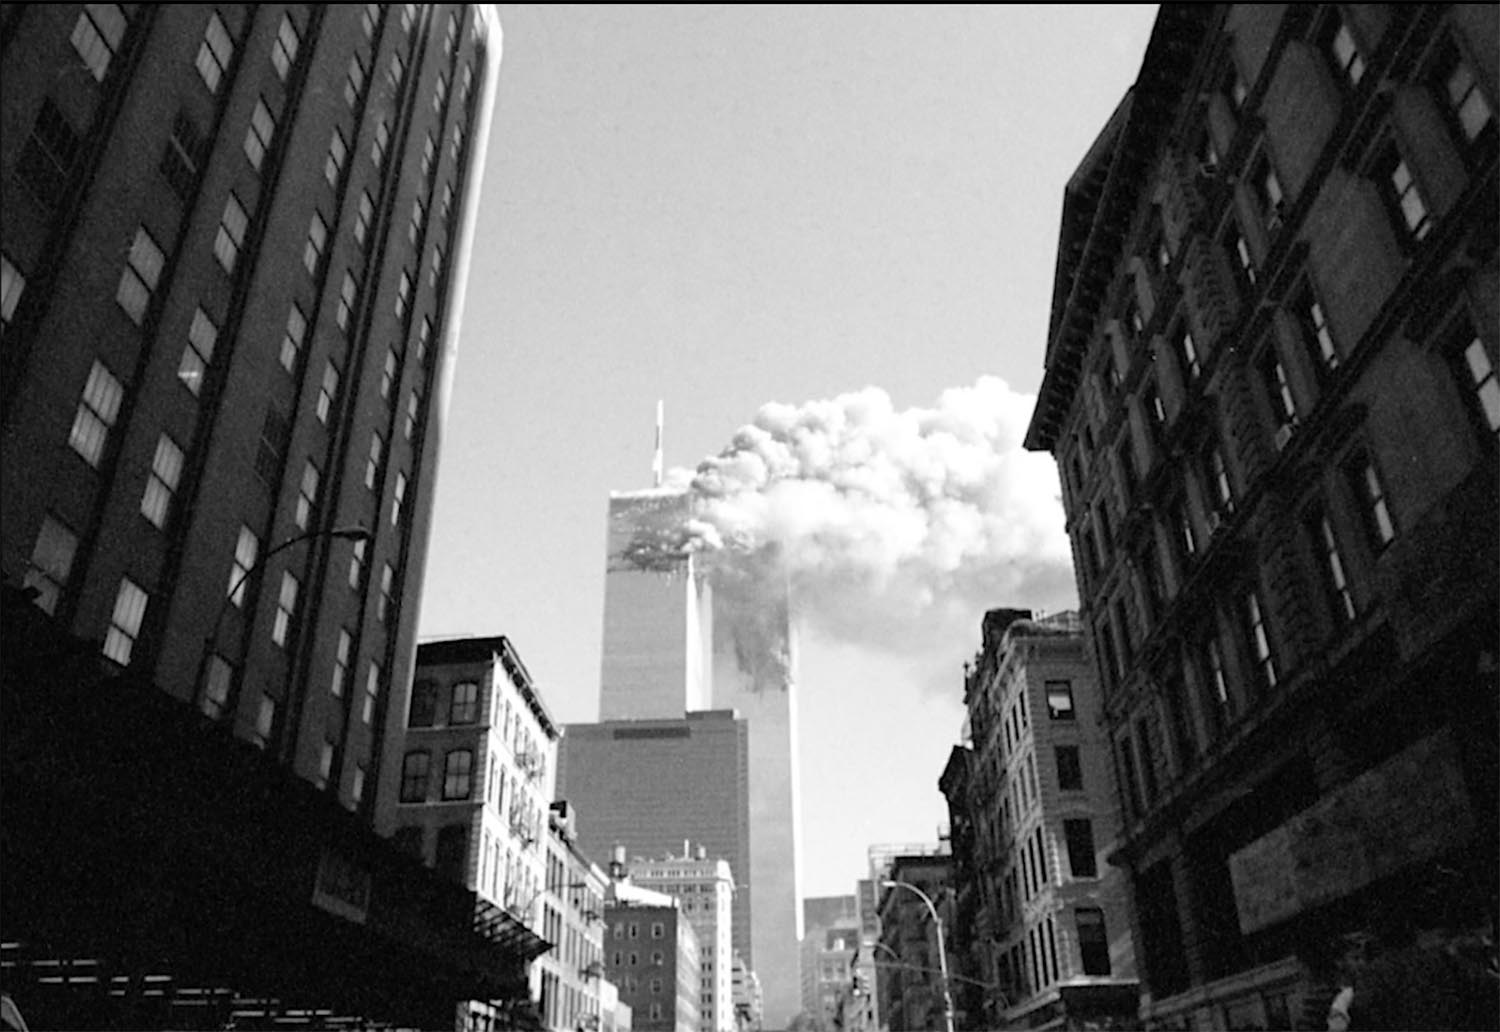 'The Day The Towers Fell - my 9/11 journey' Jason Florio: September 11th, 2001-the North Tower on fire after the first plane hits, World Trade Center Towers, NYC. Black and white image ©Jason Florio